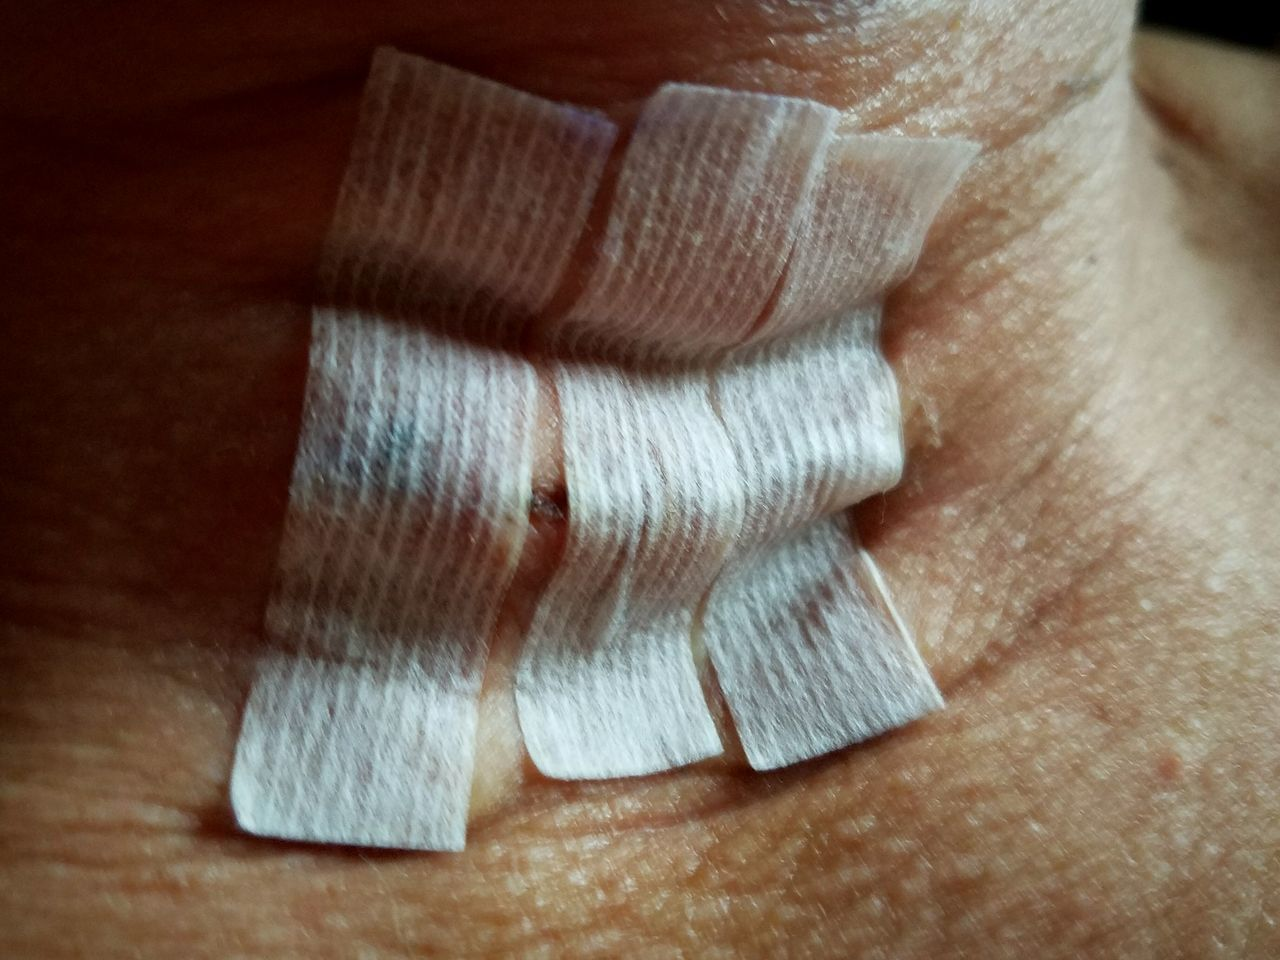 Post Parathyroidectomy Bandage Parathyroid Parathyroidectomy Surgery Medicine Health Care Post Surgery  Neck Wound Steri Strips Future Scar Canman Show Studio Iowa Cedar Rapids